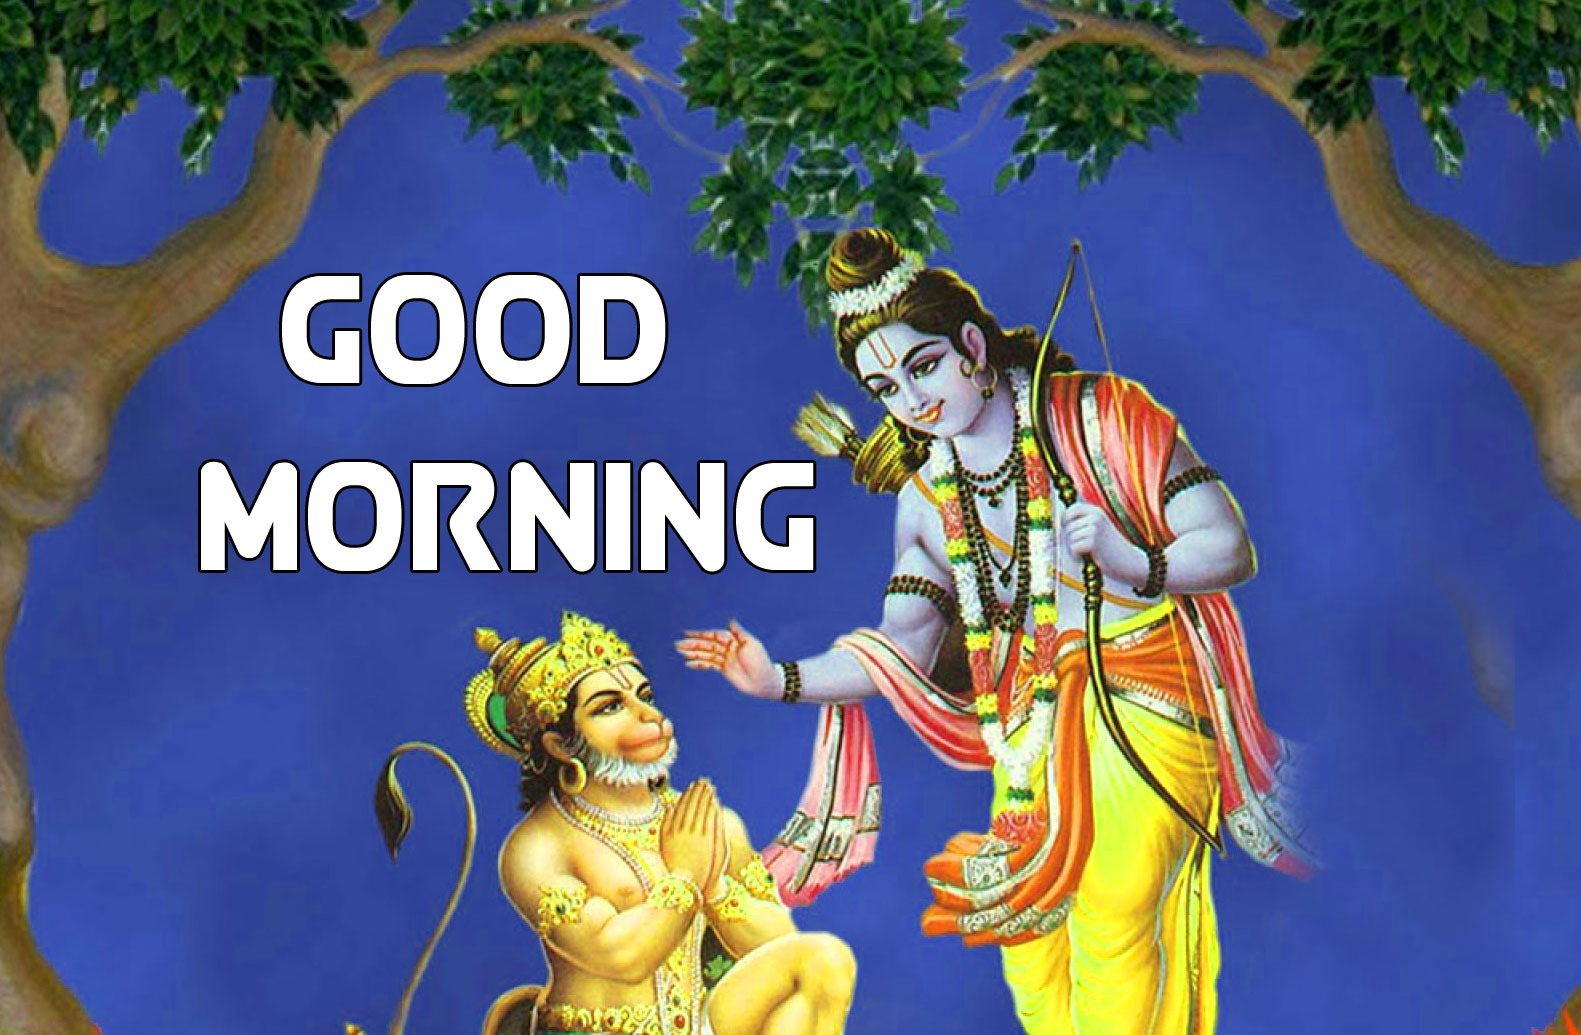 Hanuman Ji Good Morning Images Pics Free Download